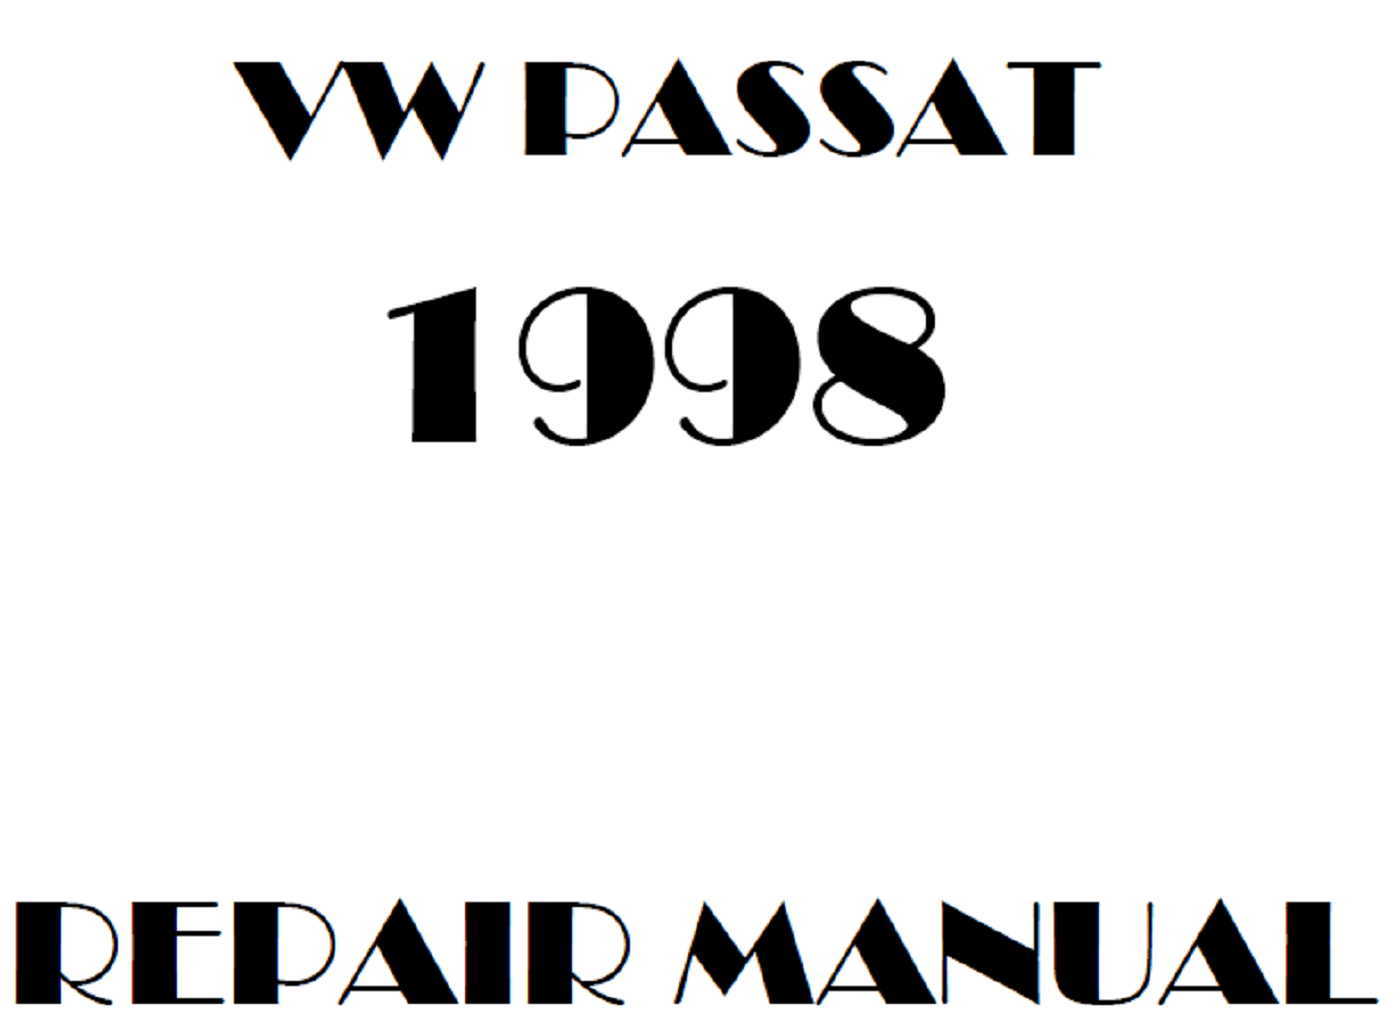 1998 Volkswagen Passat repair manual